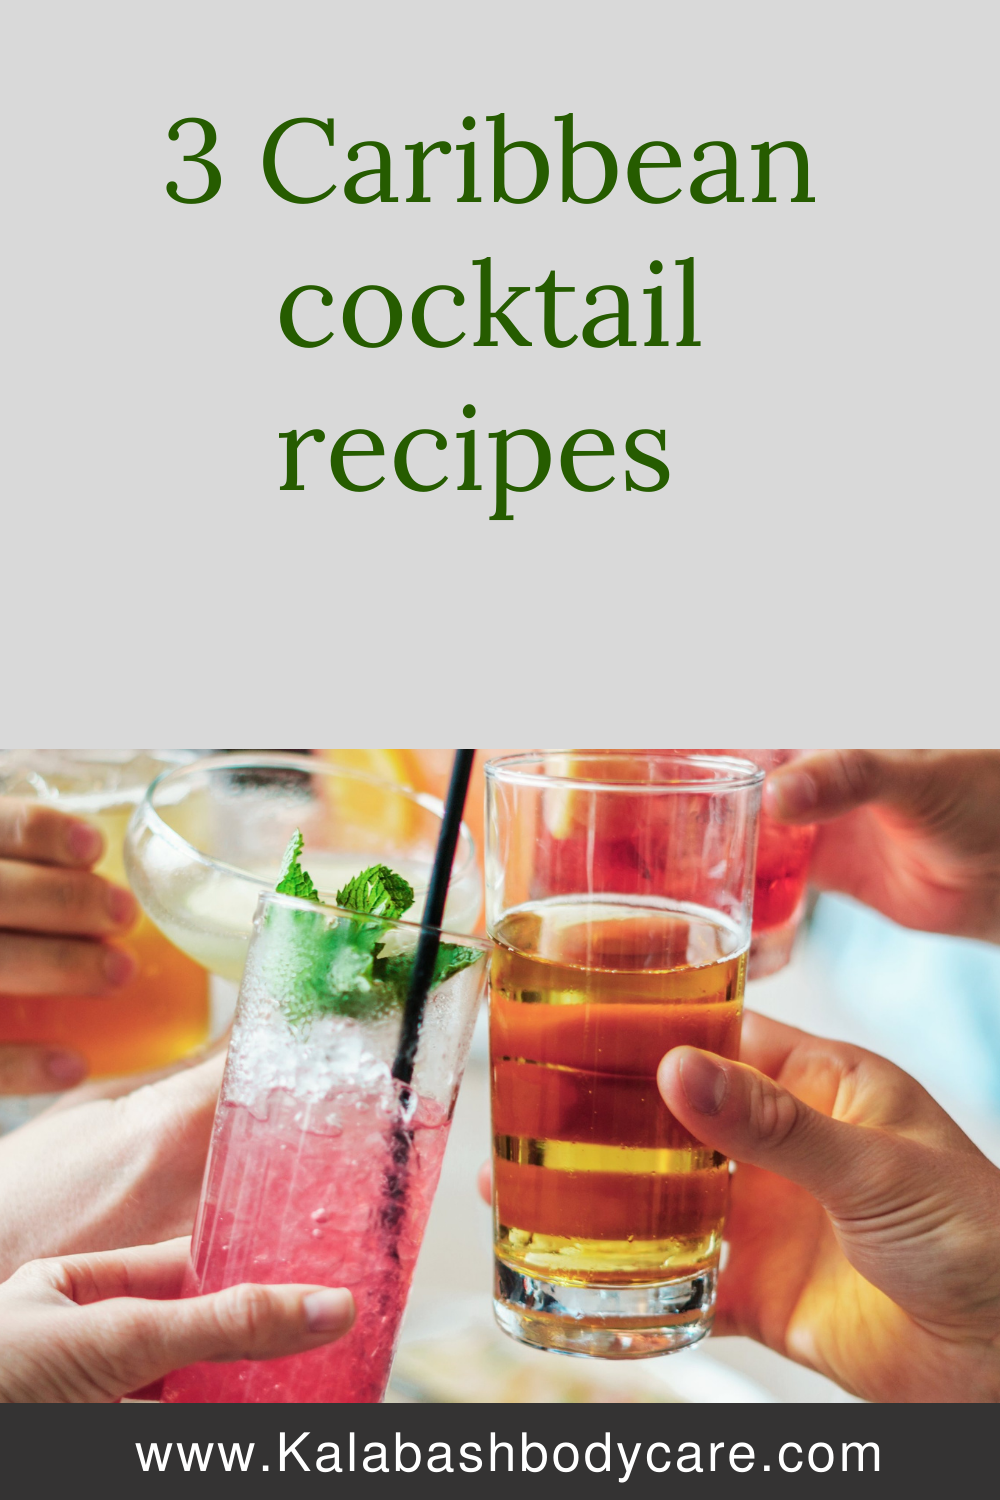 Caribbean cocktail recipes text on grey background with hands holding glass celebrating full of brightly coloured coattails and fruit